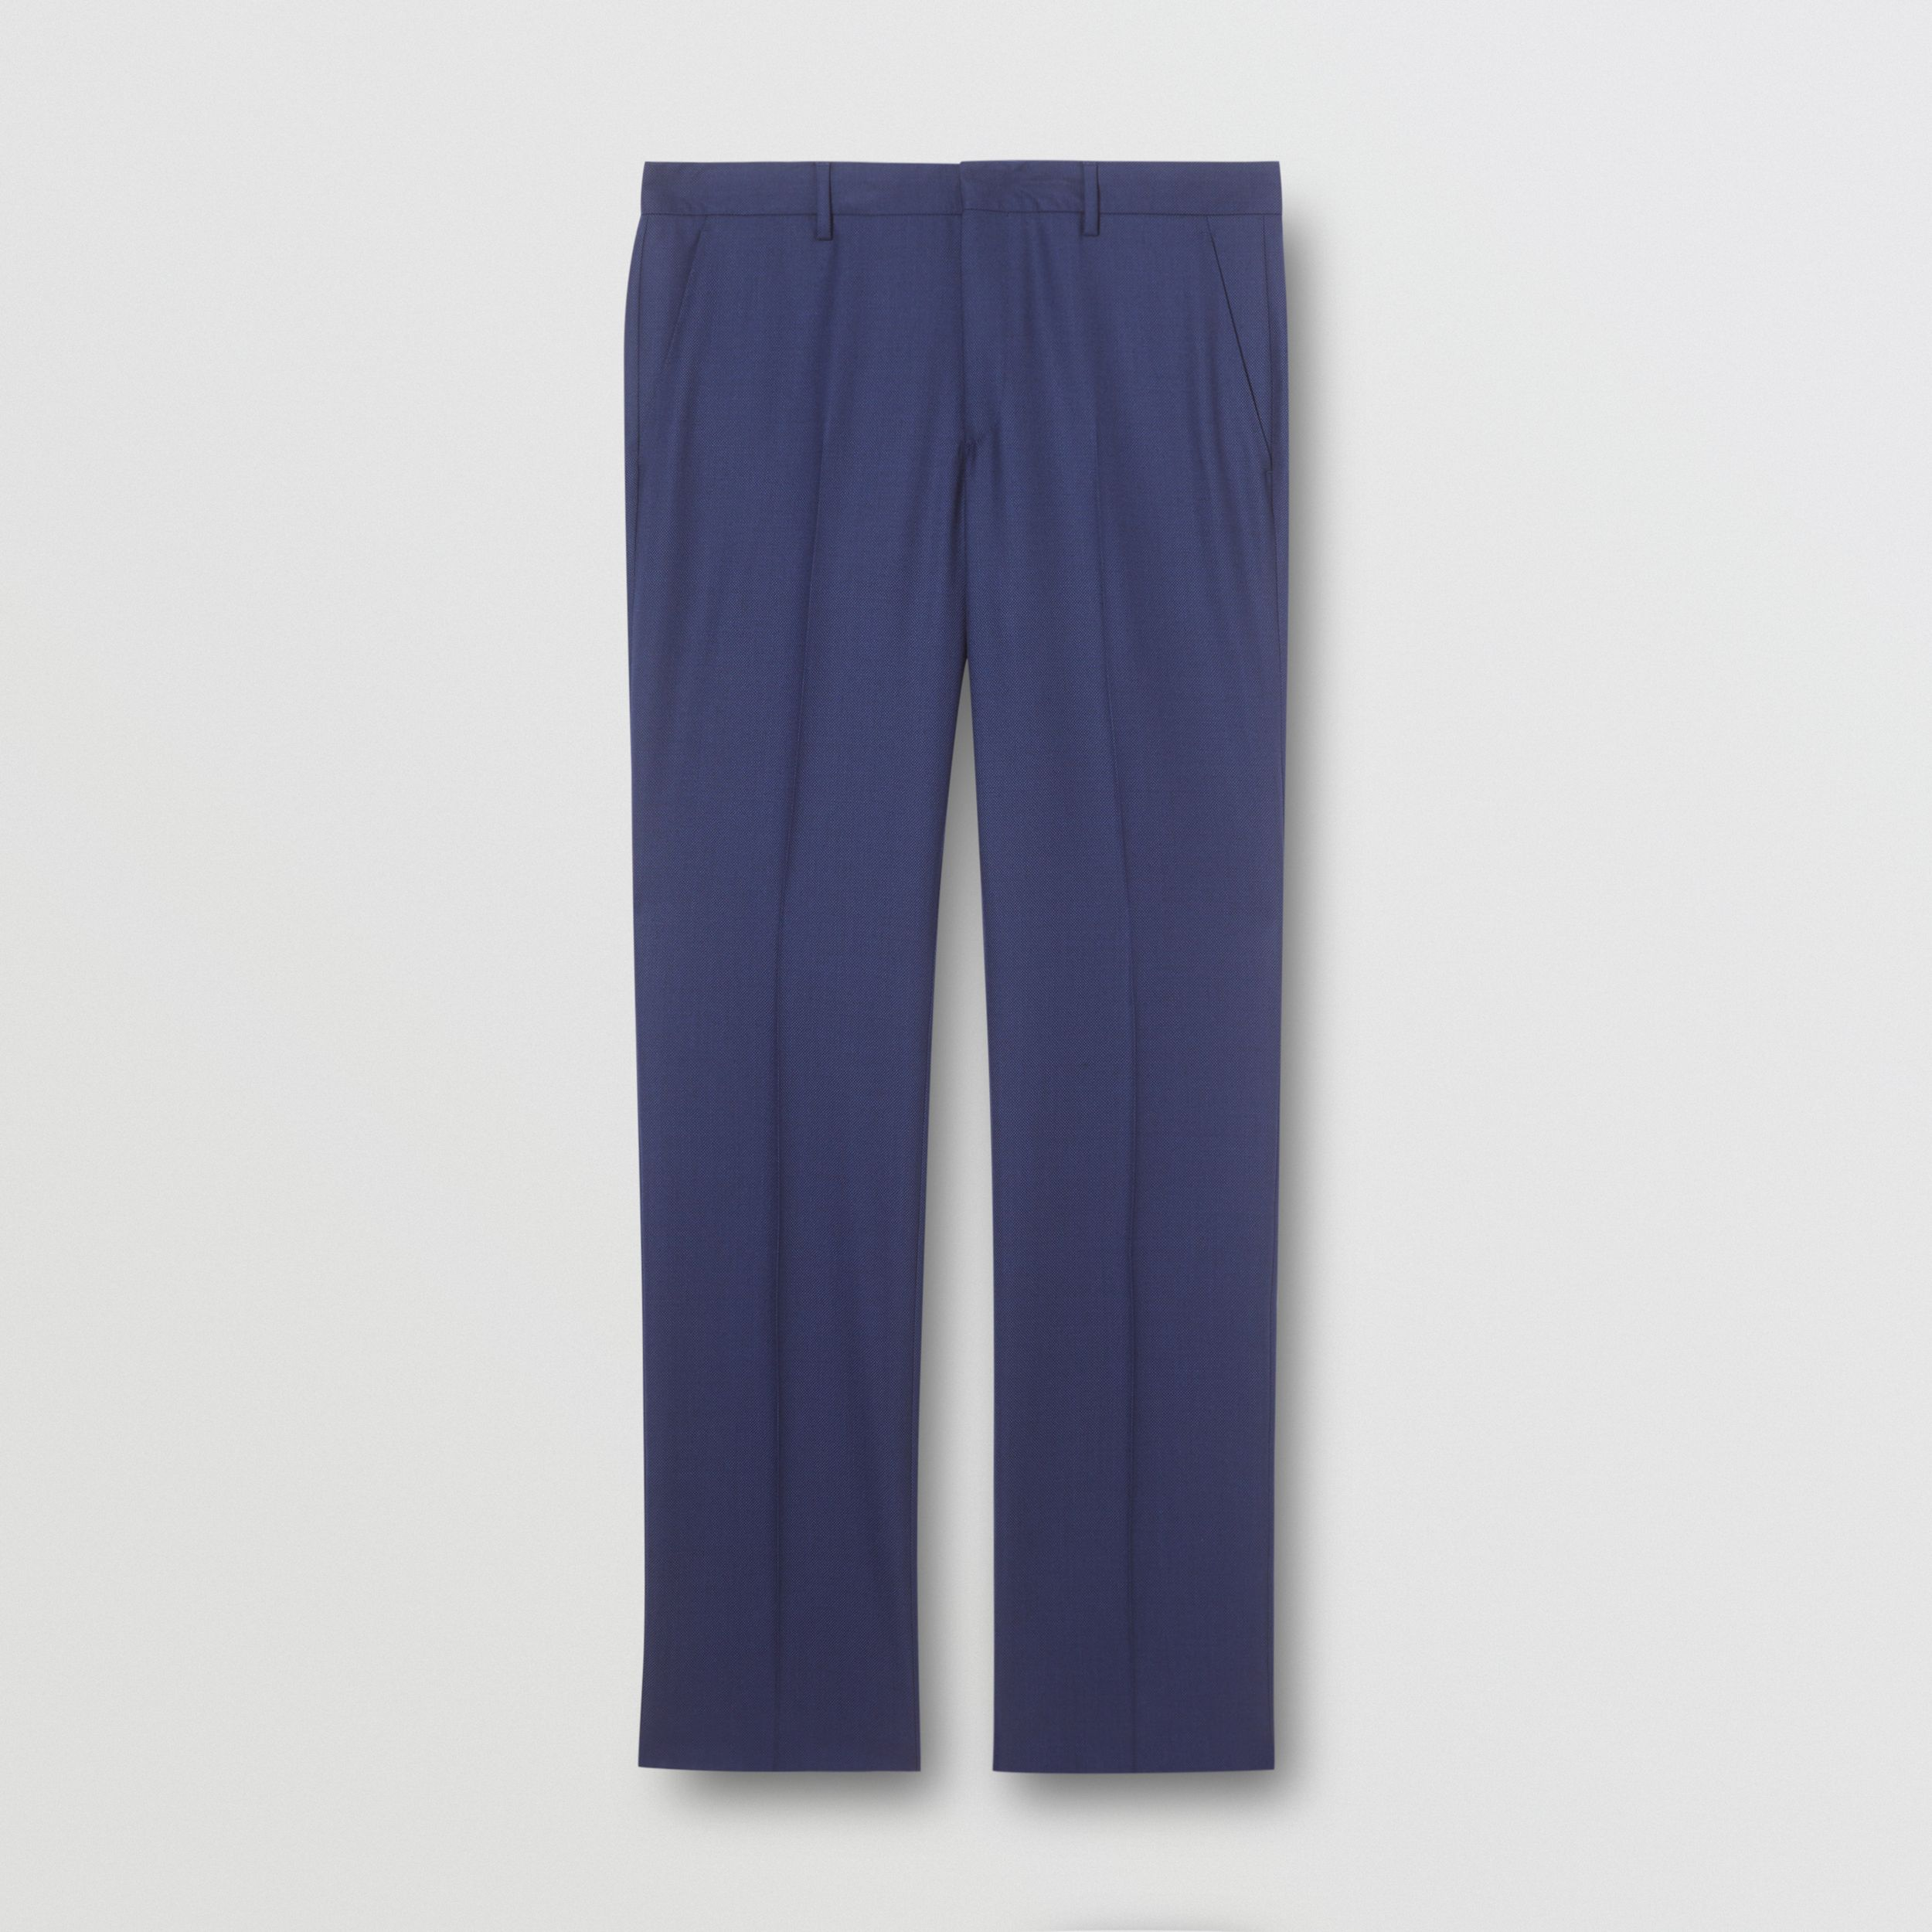 Classic Fit Birdseye Wool Tailored Trousers in Bright Navy - Men | Burberry - 4